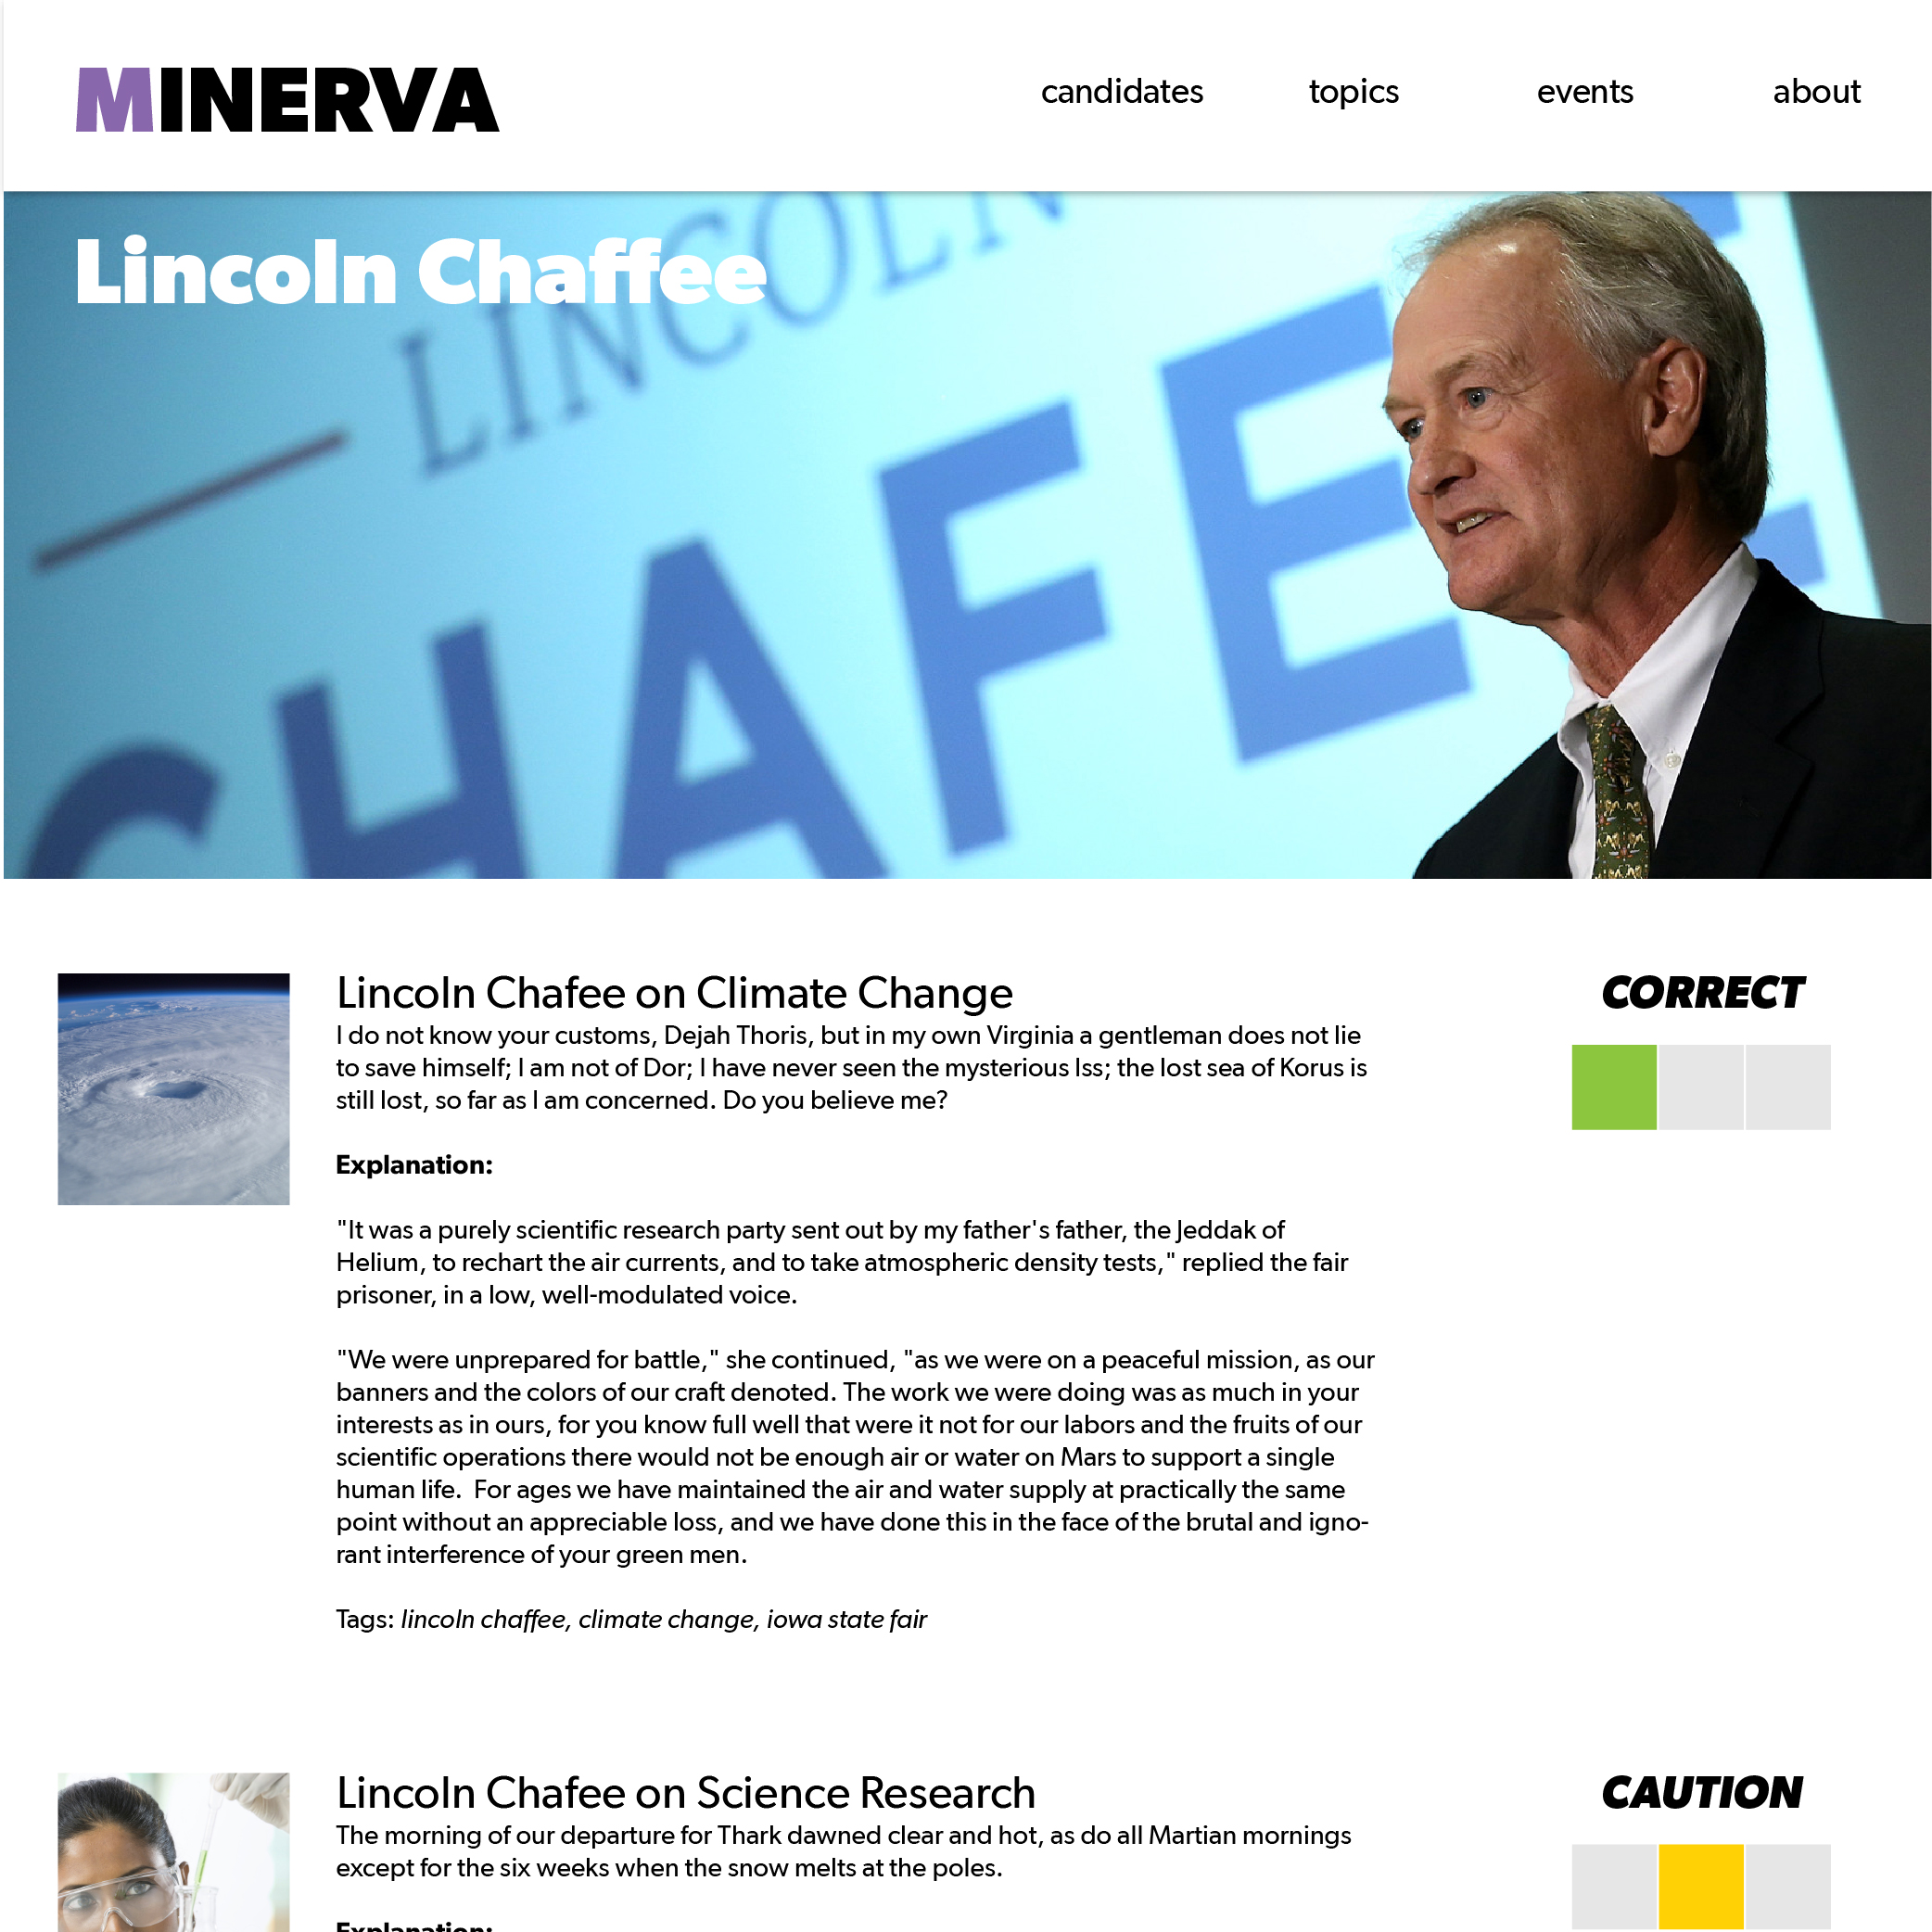 Project Minvera Candidate (Category) Page